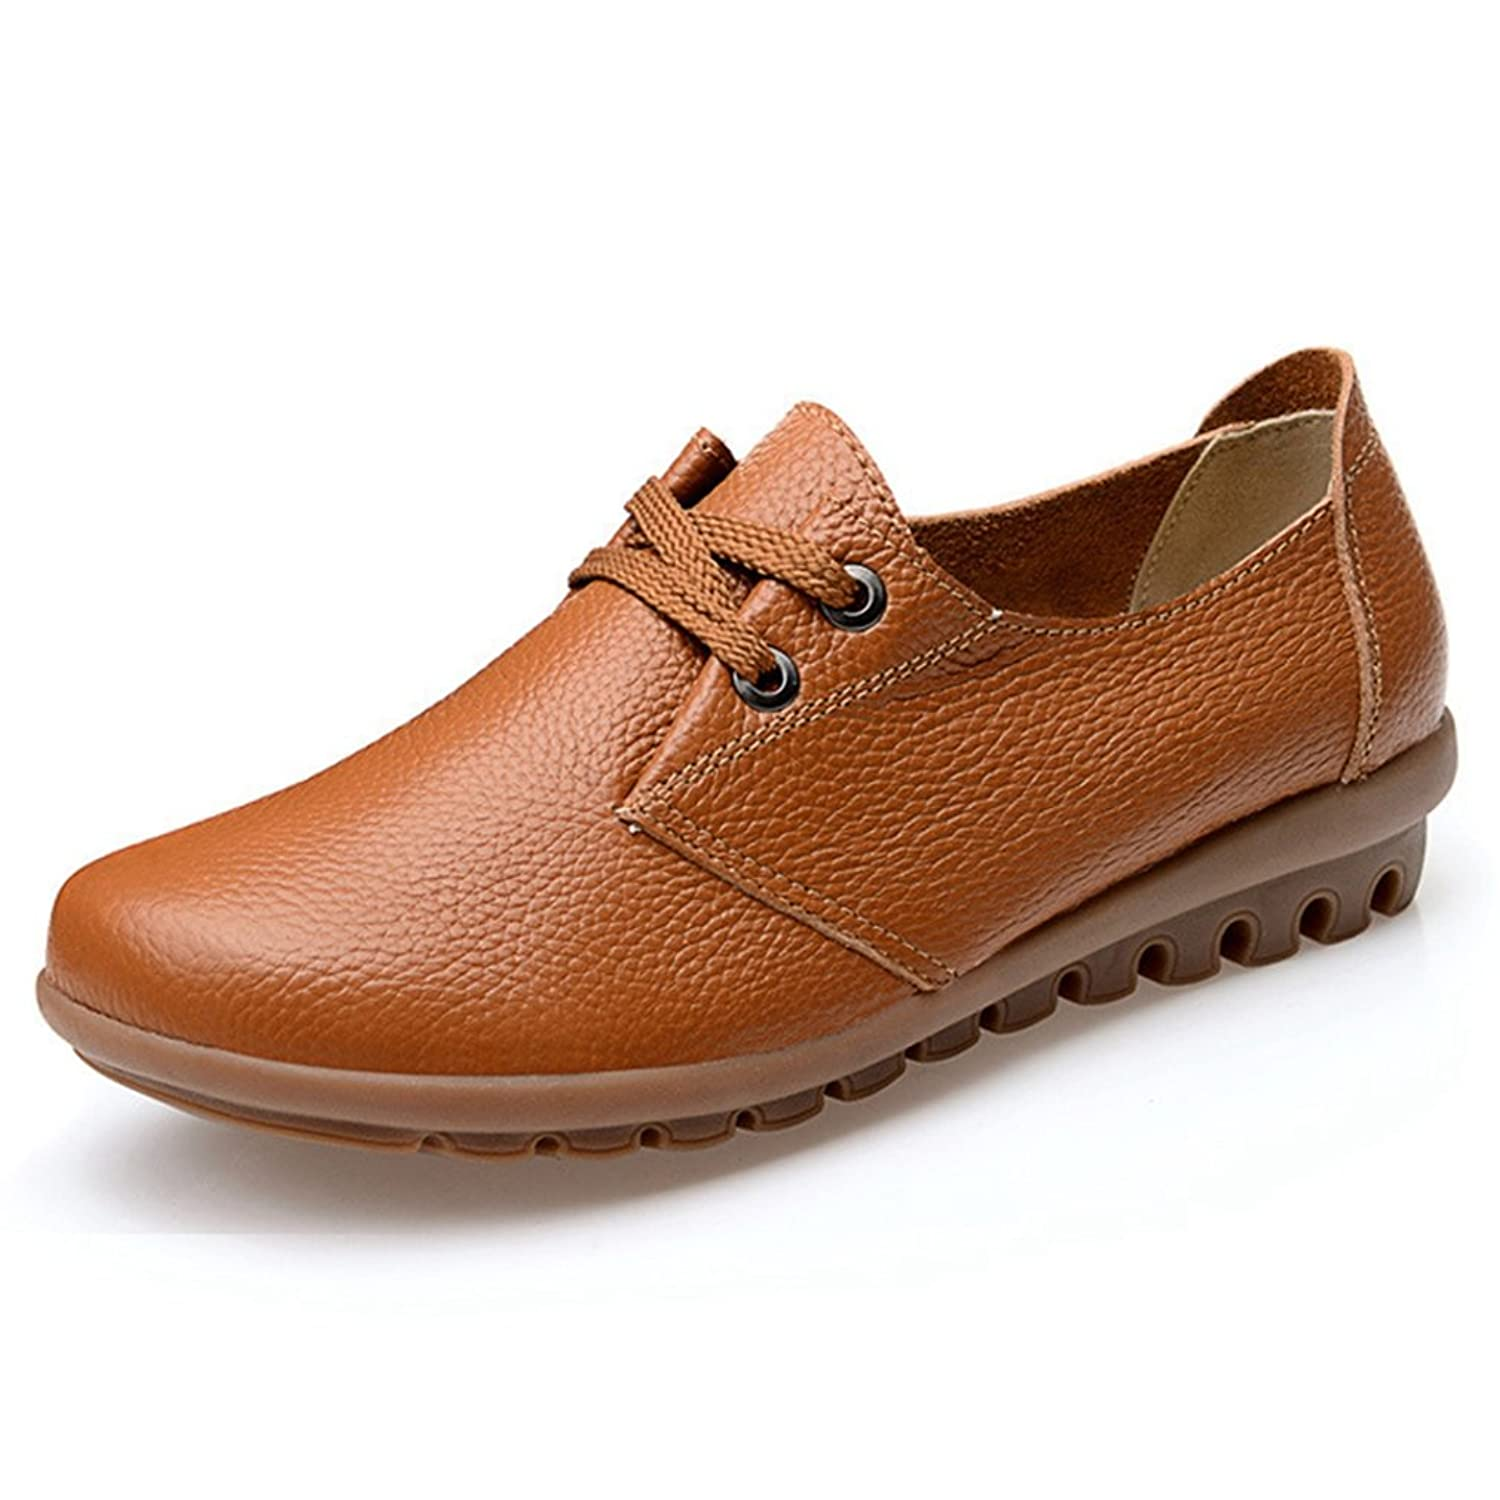 Hoxekle Womens Bowknot Round Toes/Perforated/British Style/Platform Oxford Shoes/Vintage Oxford Shoes